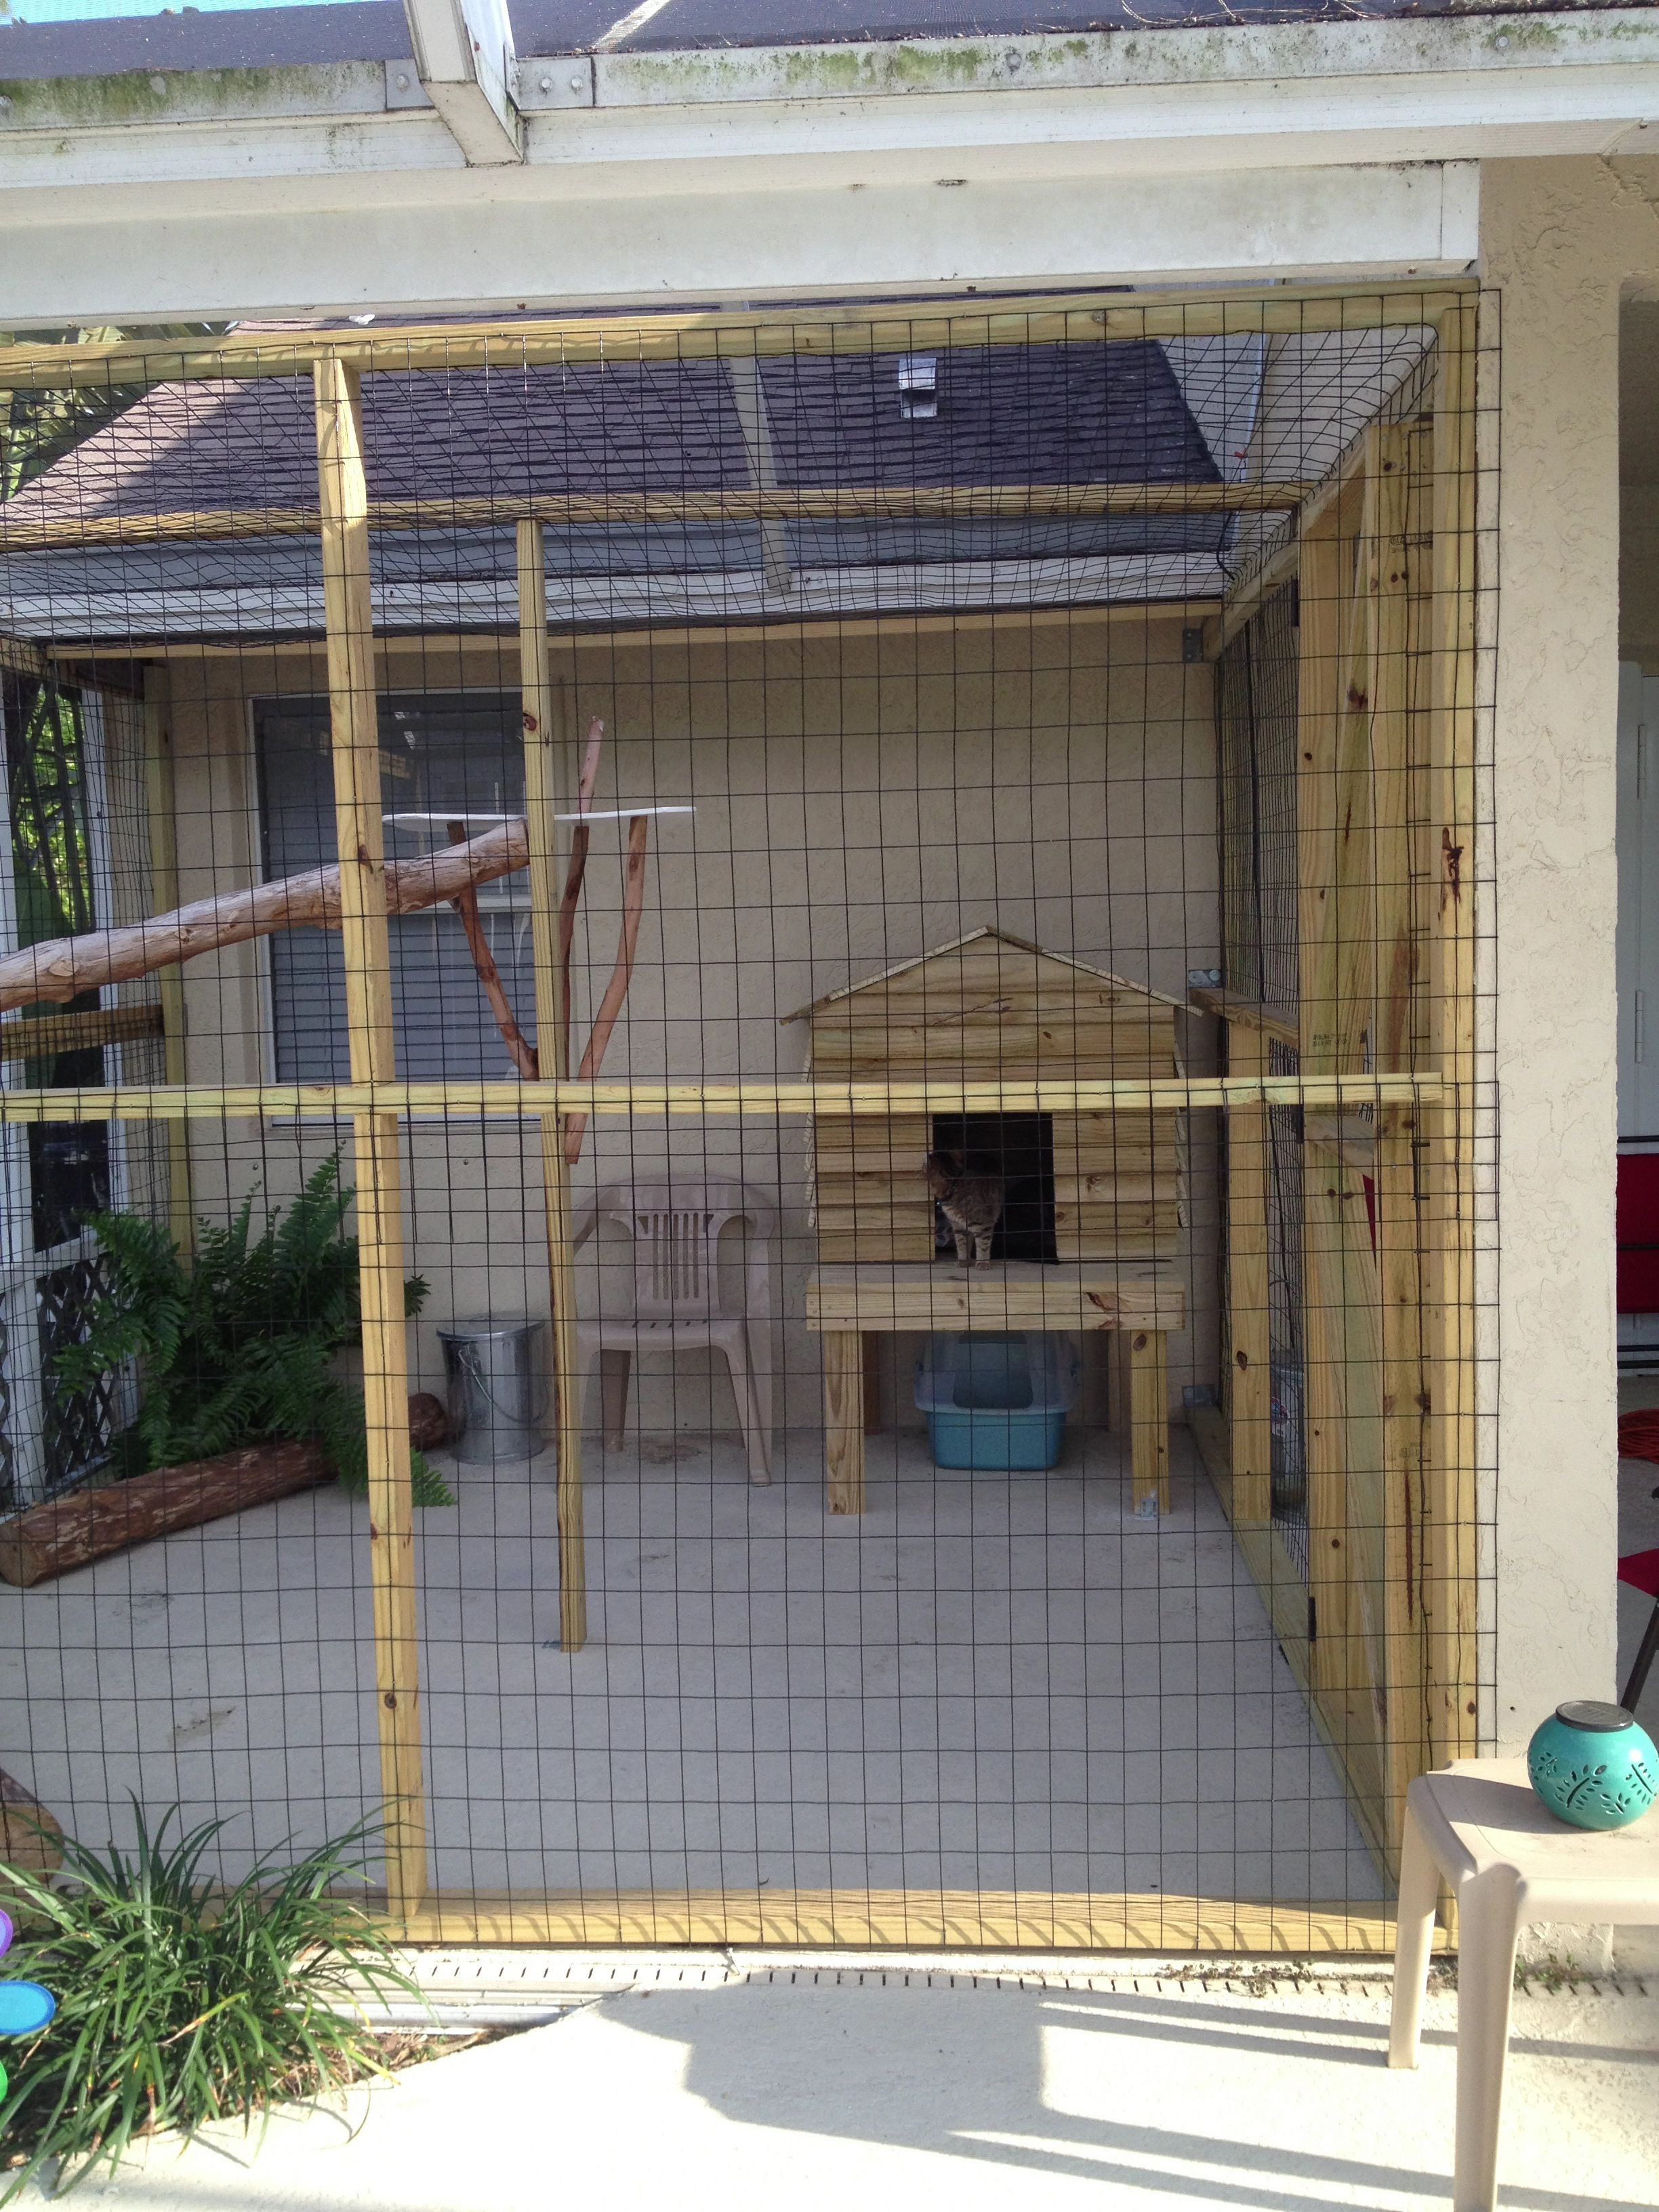 Catio=an outdoor cat enclosure inside a patio